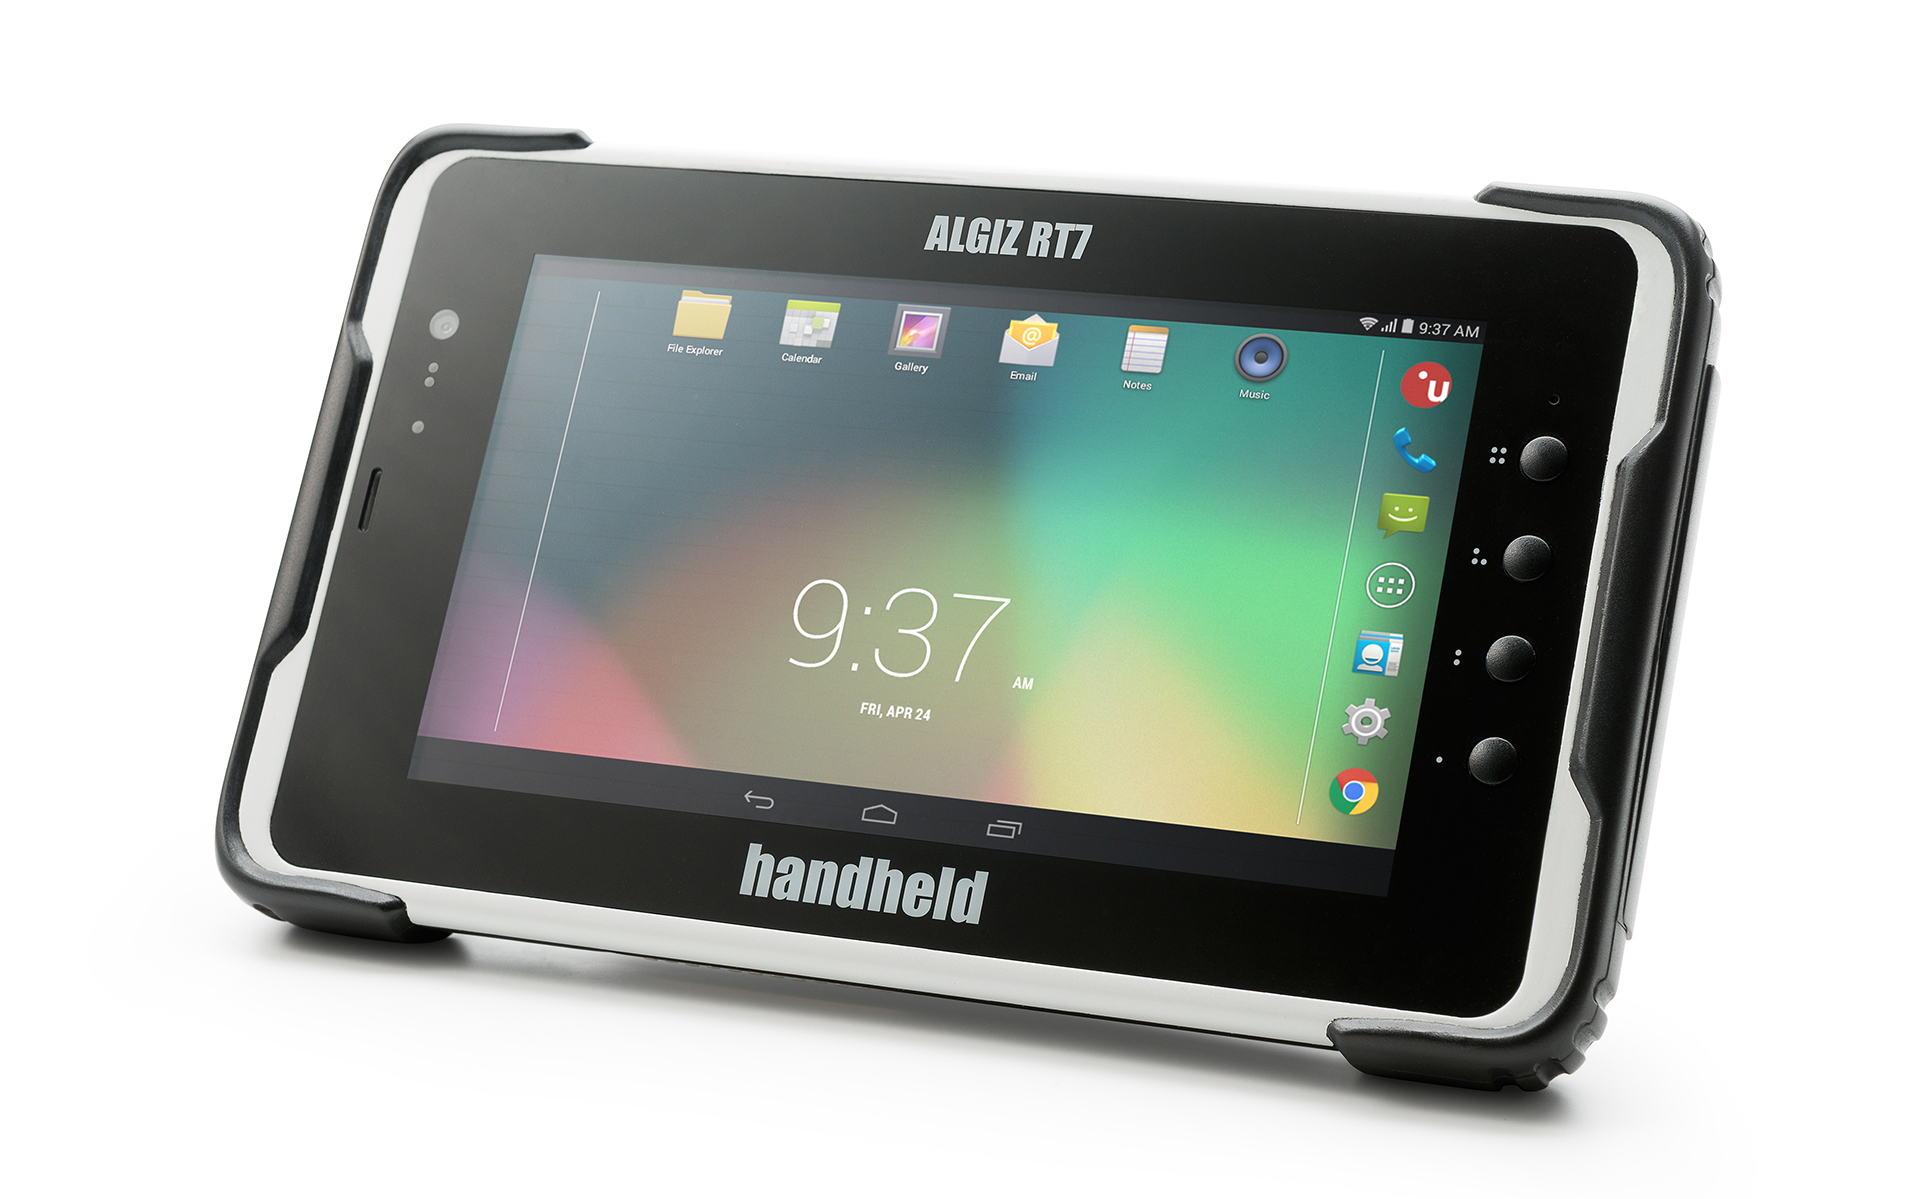 Algiz-RT7-handheld-tablet-facing-left.jpg